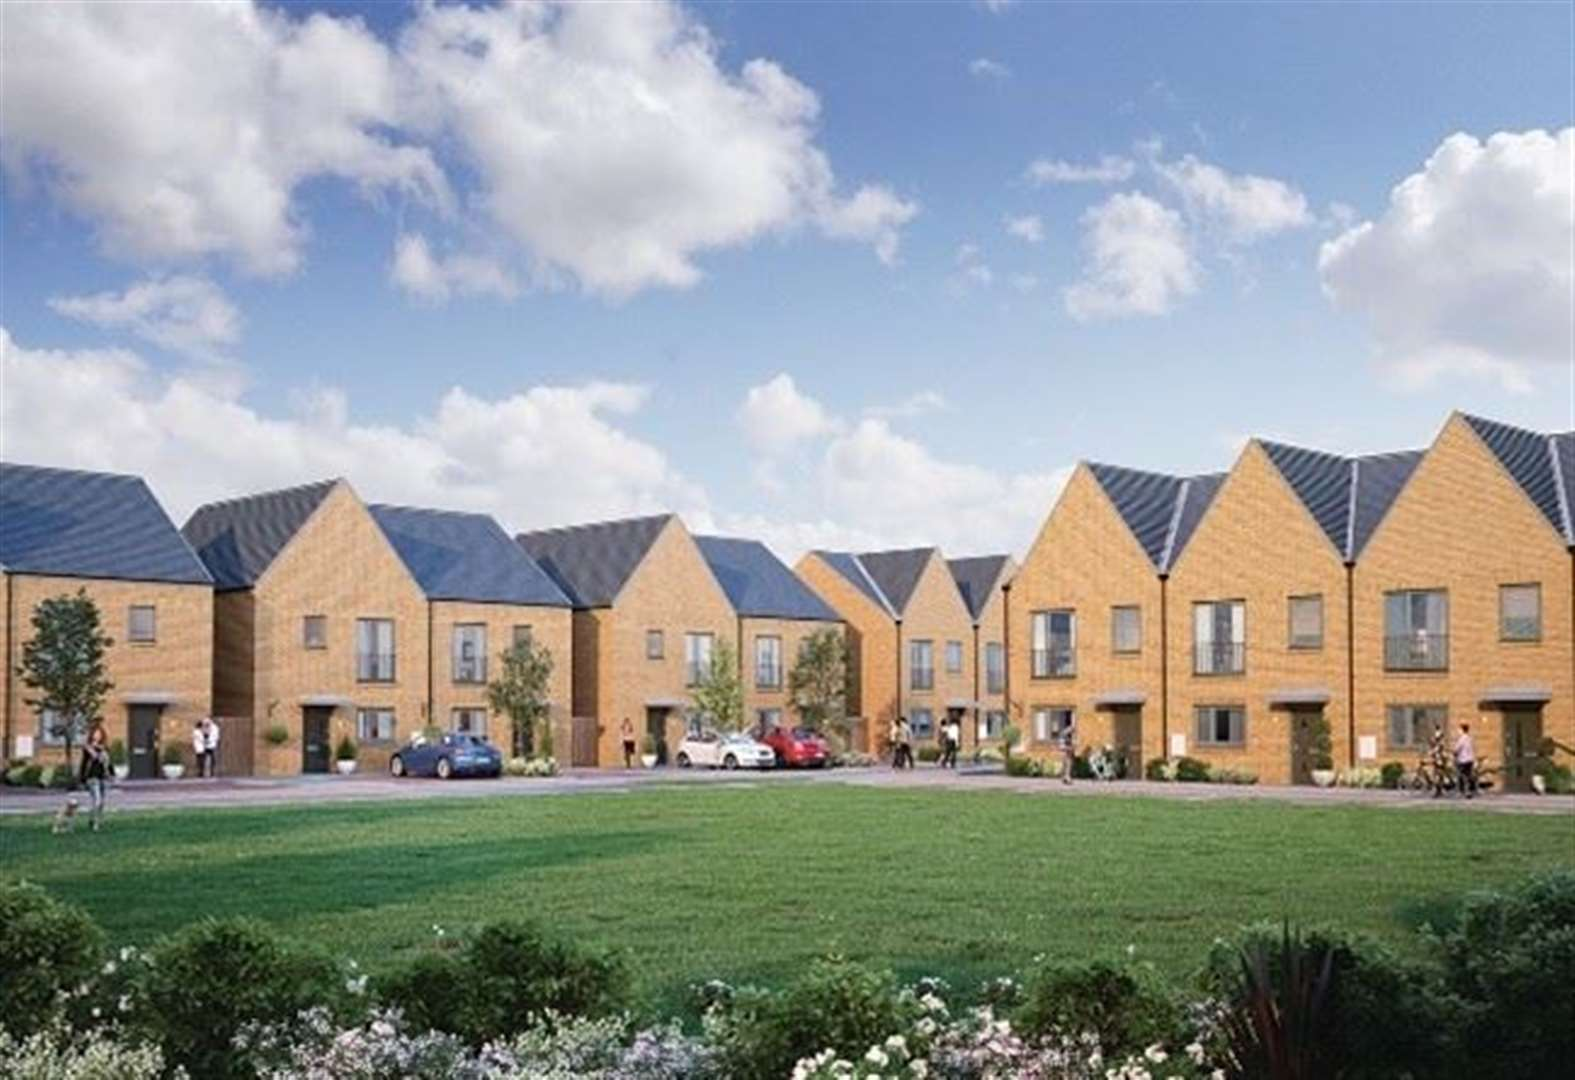 Plans for 233 new homes at ex-quarry